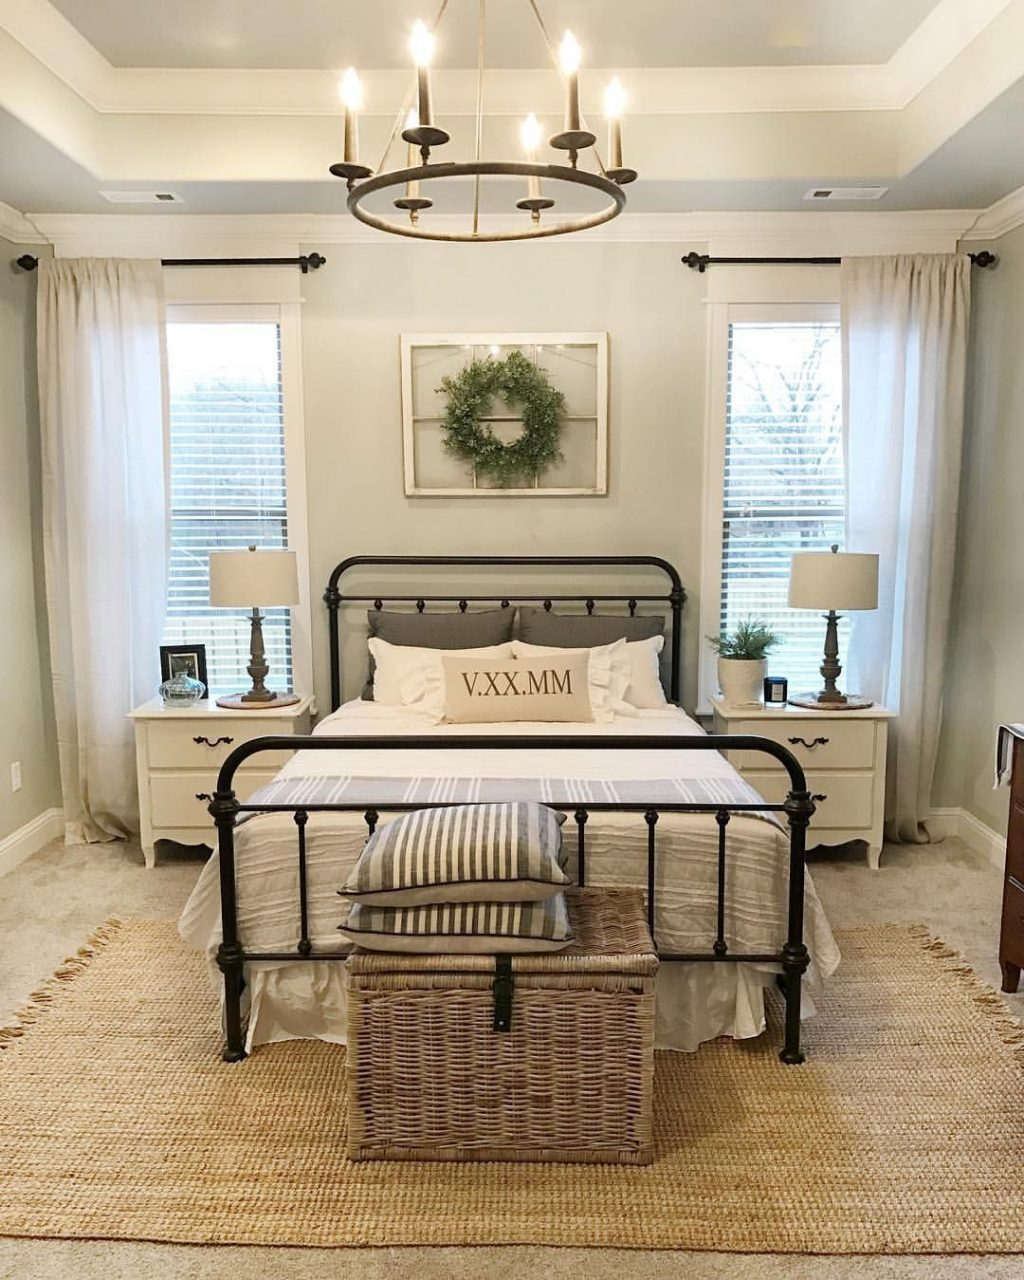 Pin Amy Garmon Stover On Home Decor That I Love In 2019 Home